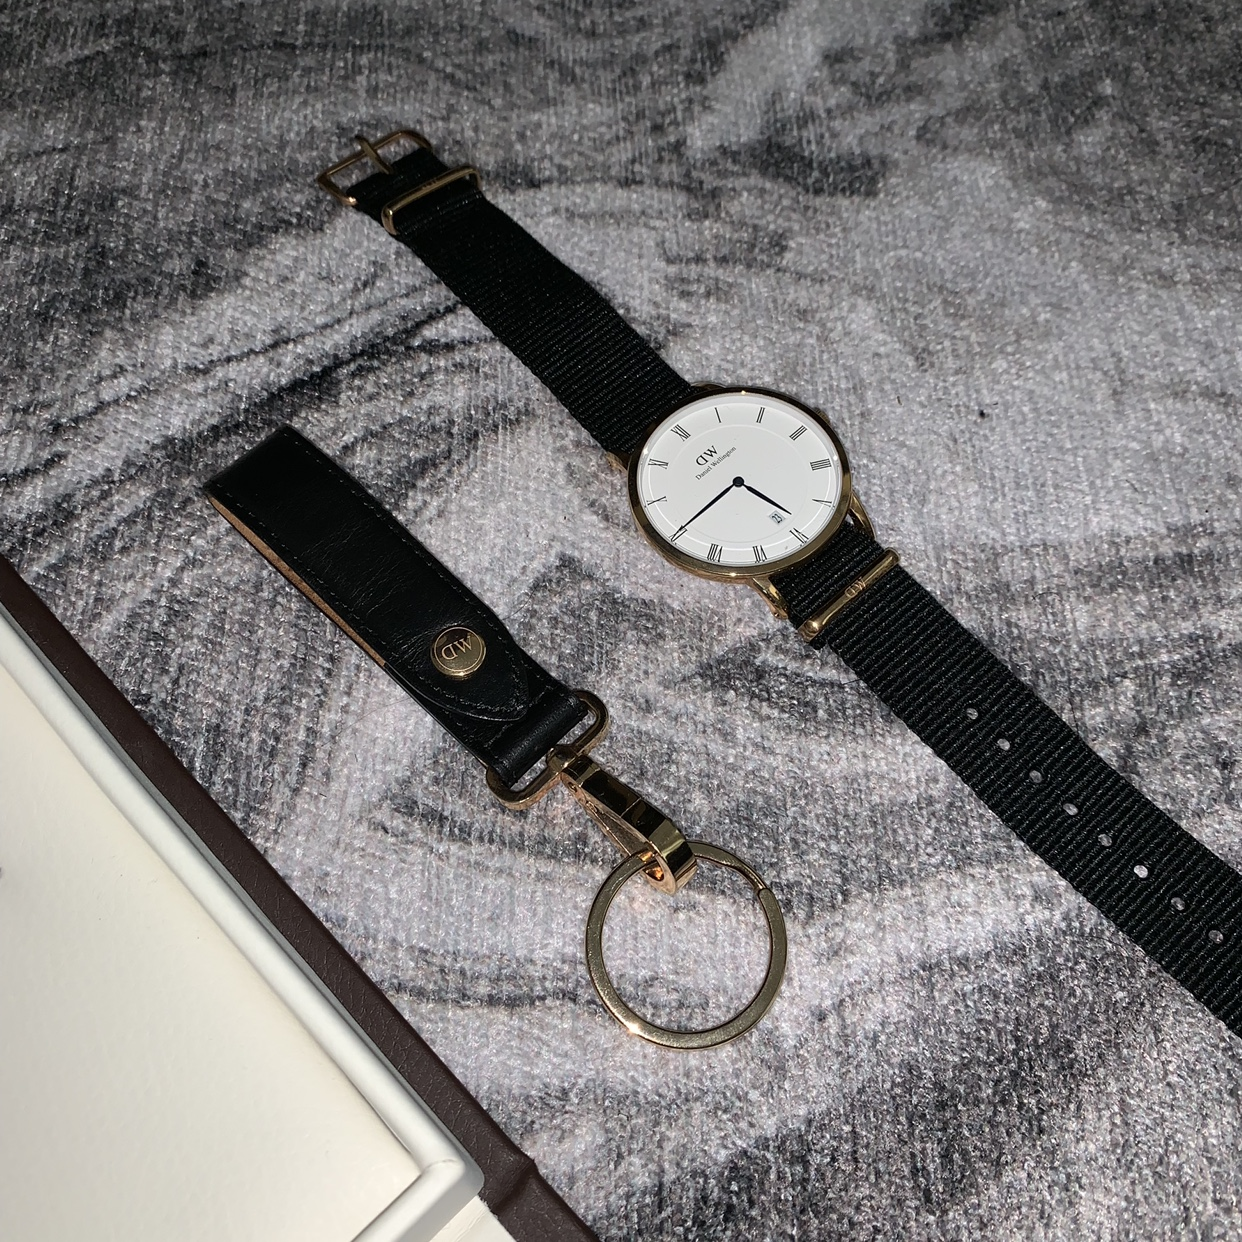 BRAND NEW! Daniel Wellington watch with a classic,    - Depop